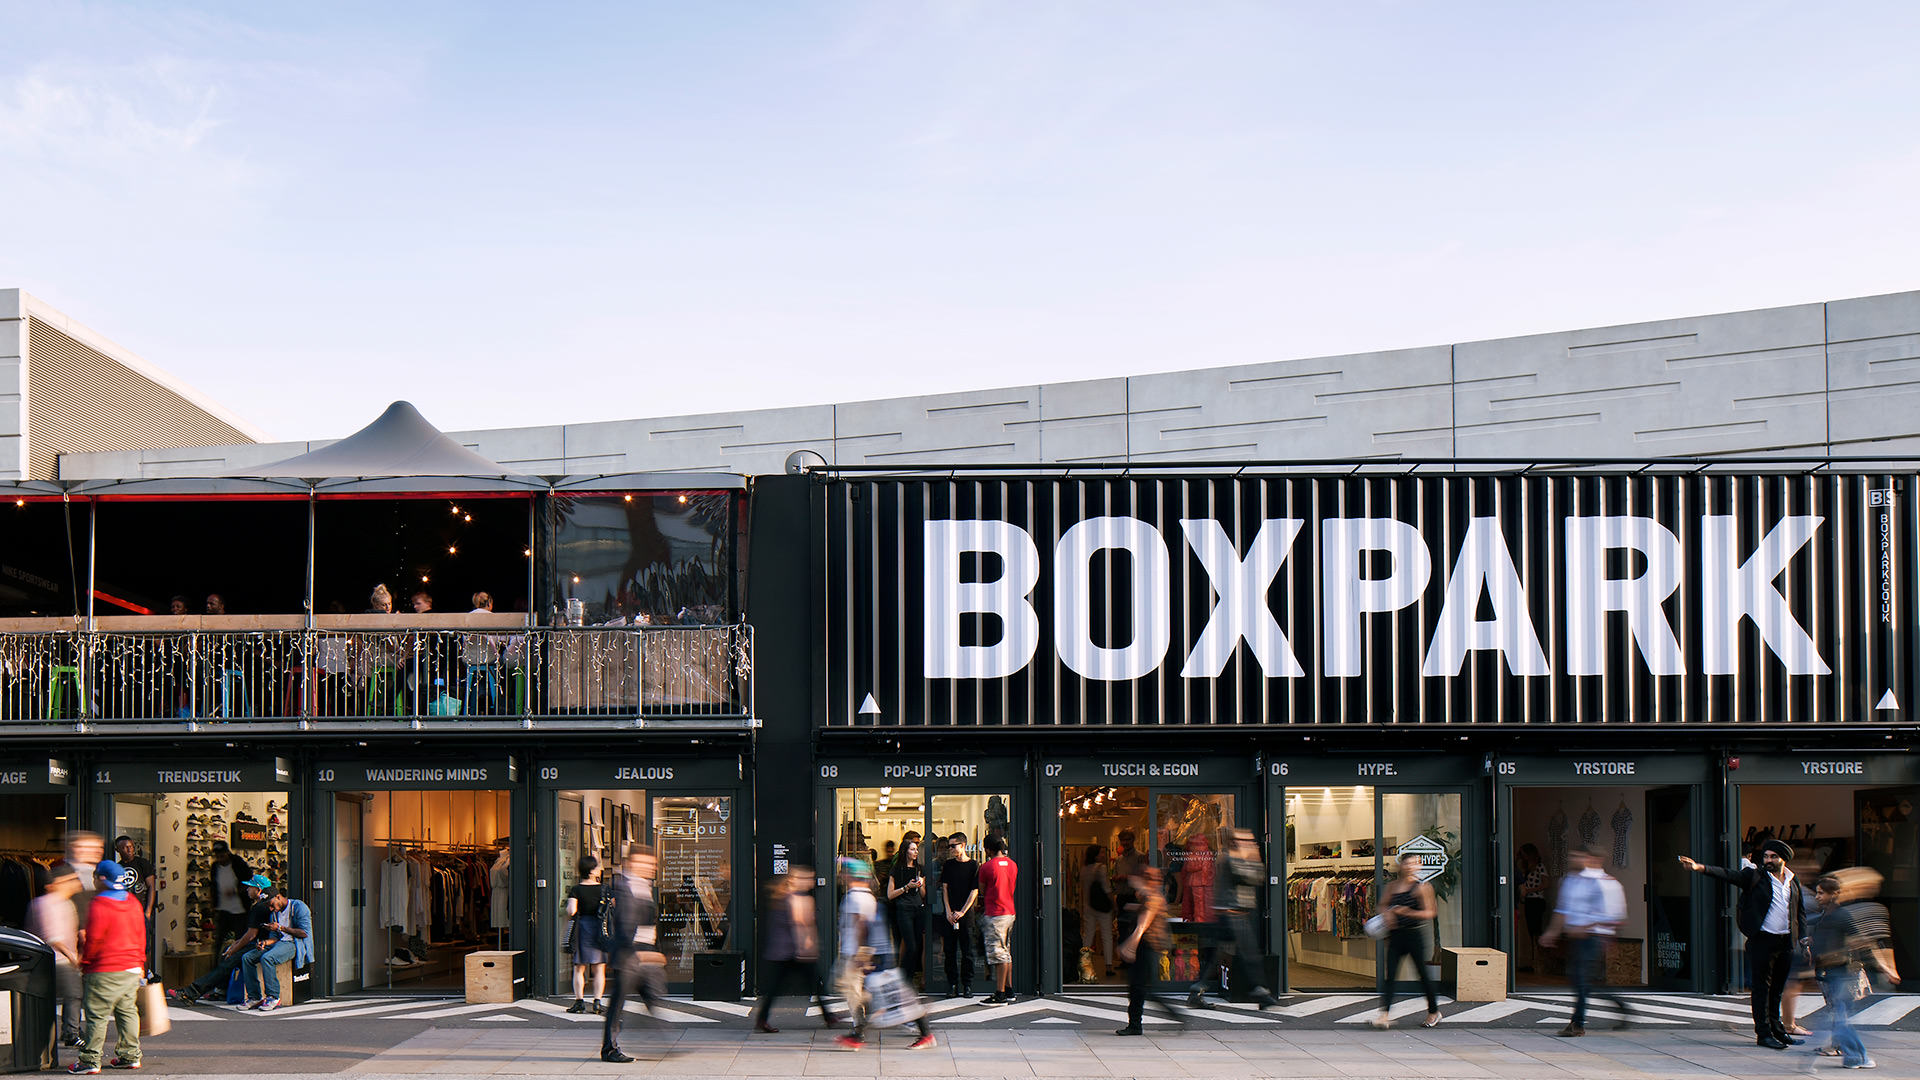 A shopping strip built with reused shipping containers